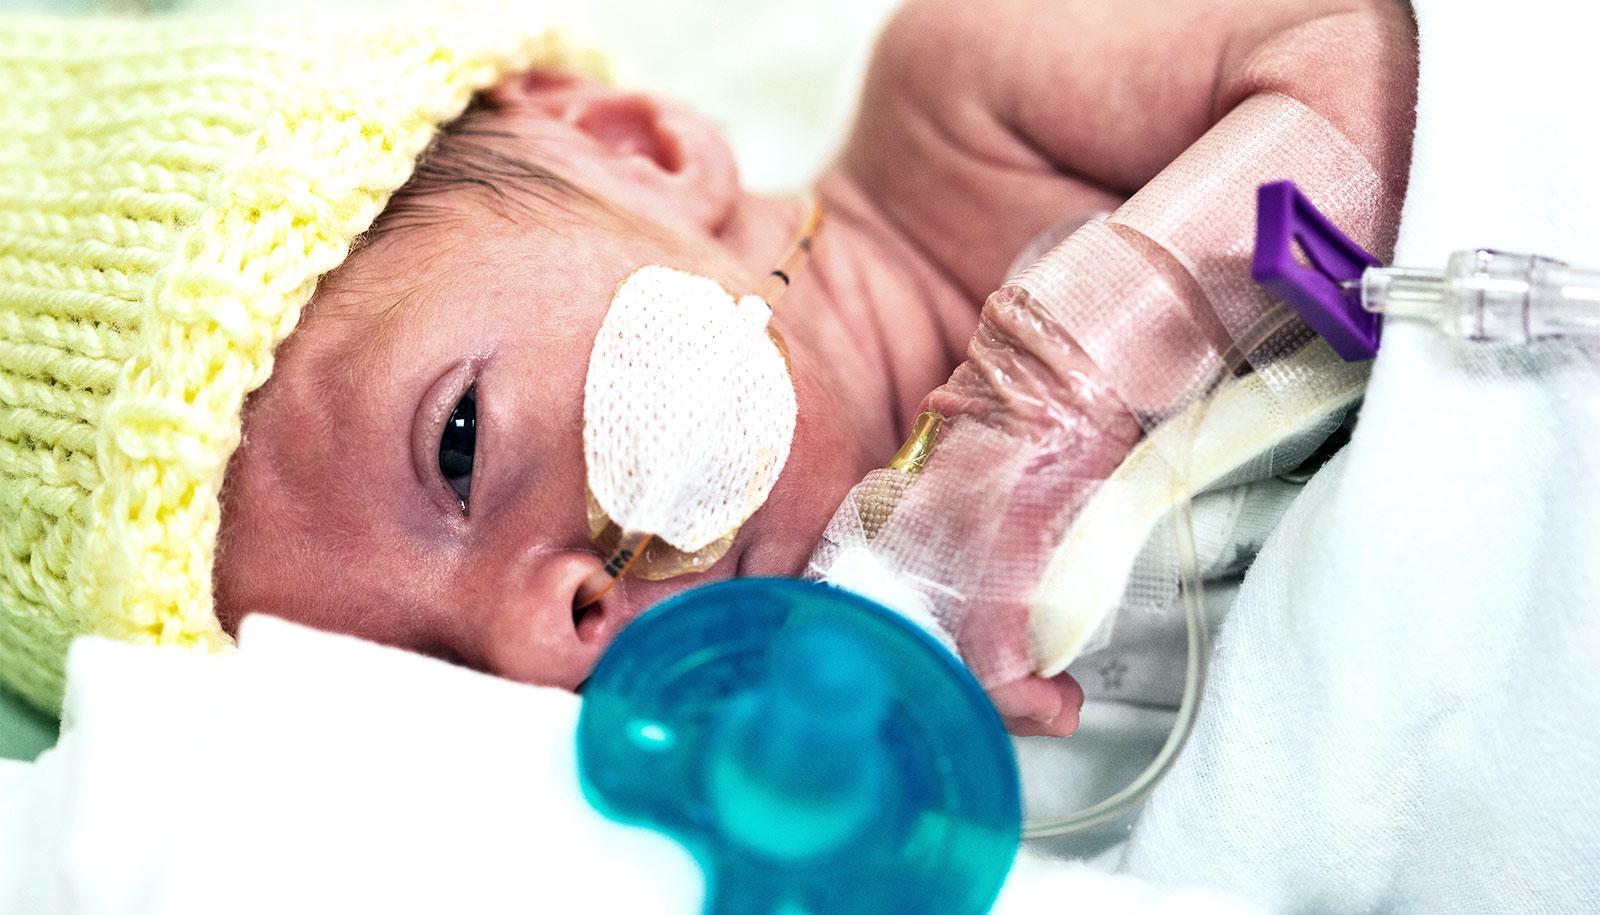 A premature baby is connected to medical equipment